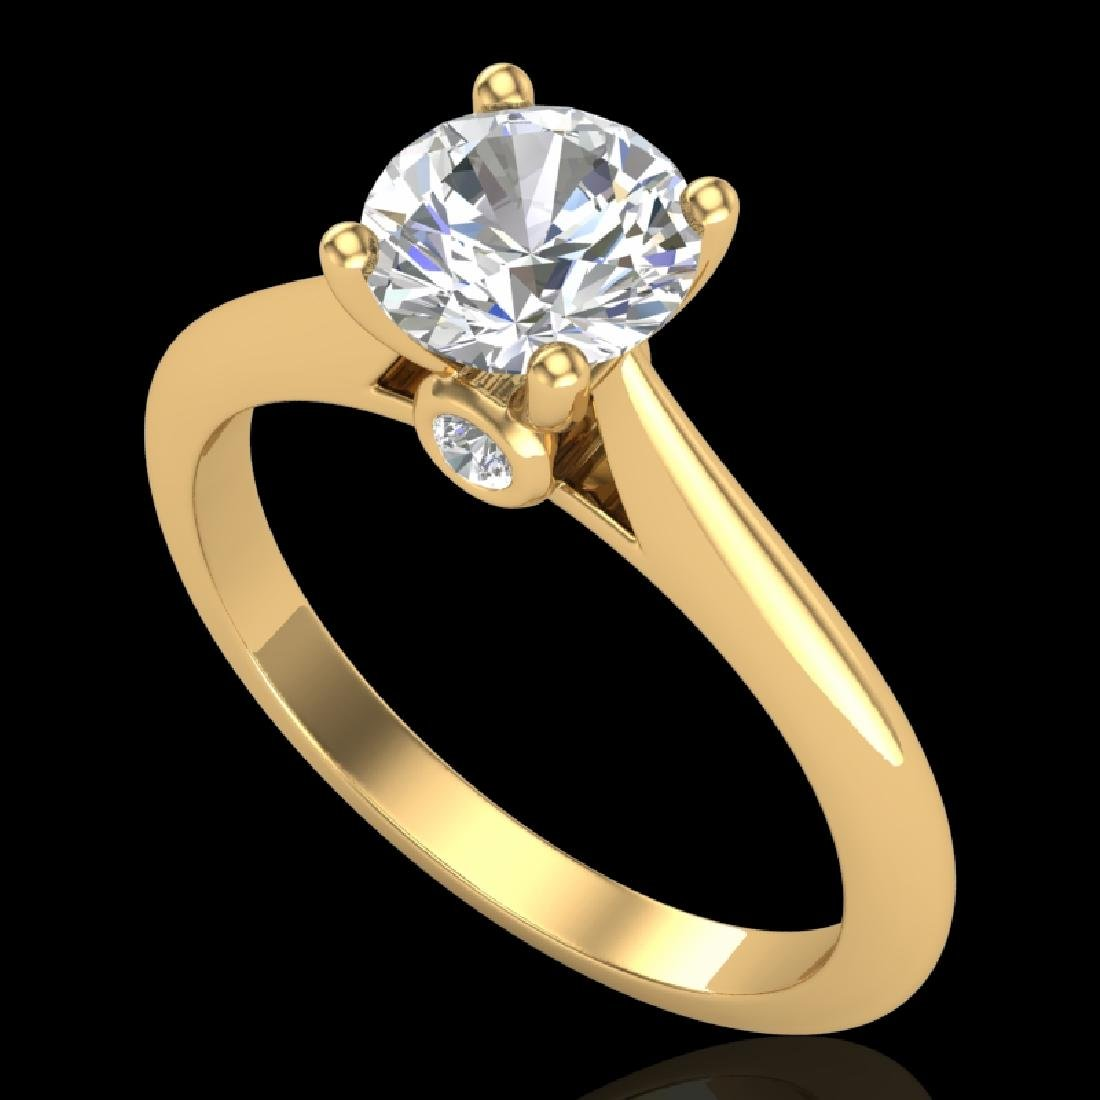 1.08 CTW VS/SI Diamond Solitaire Art Deco Ring 18K